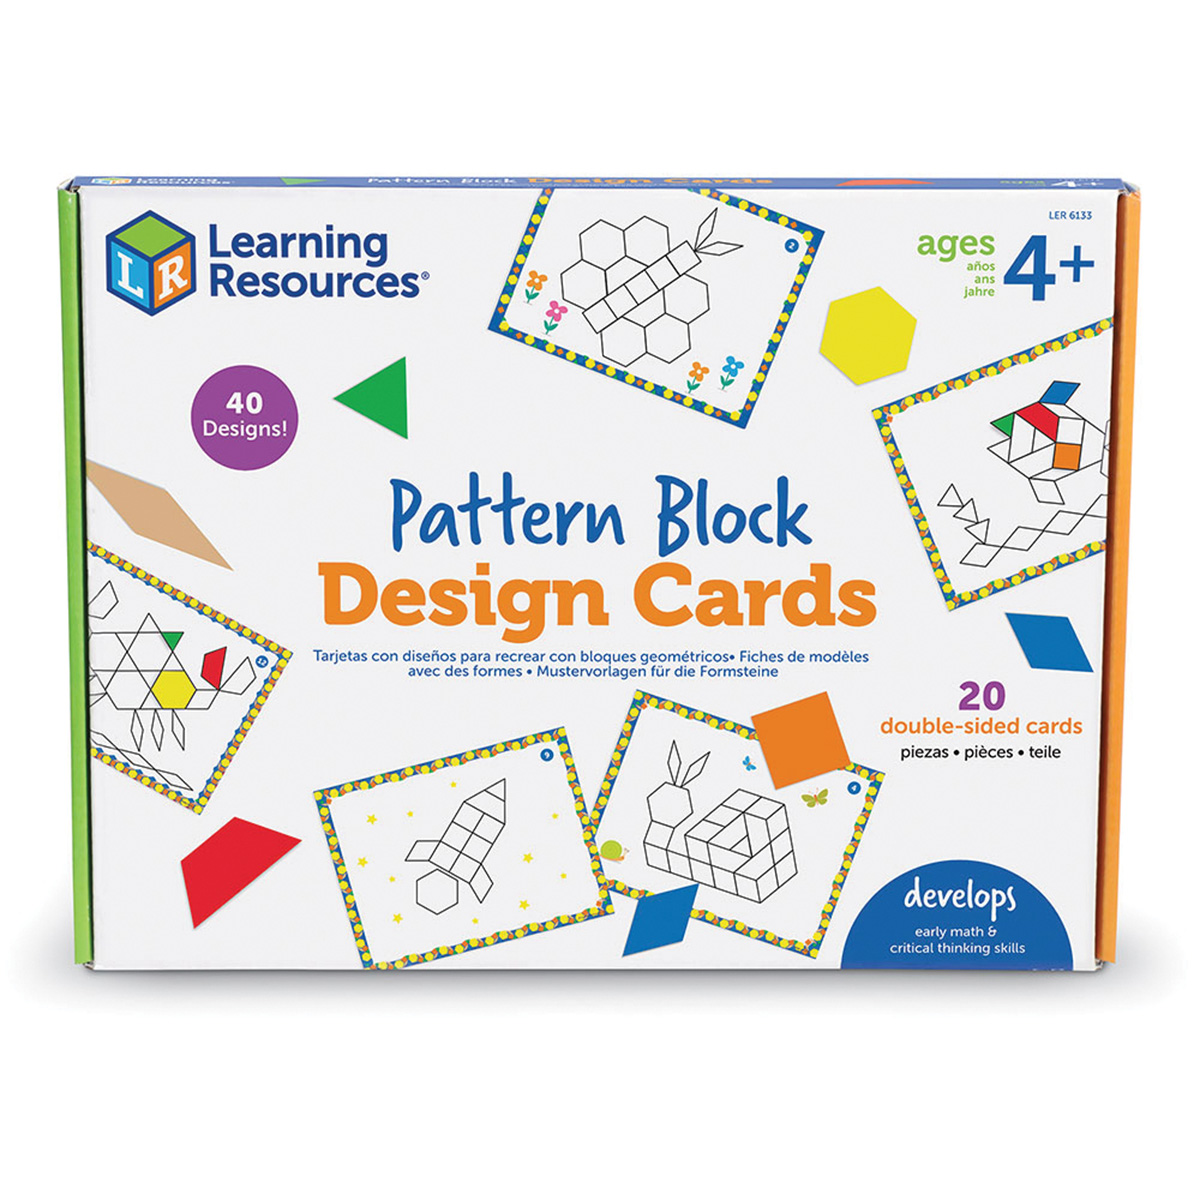 Pattern Block Design Cards